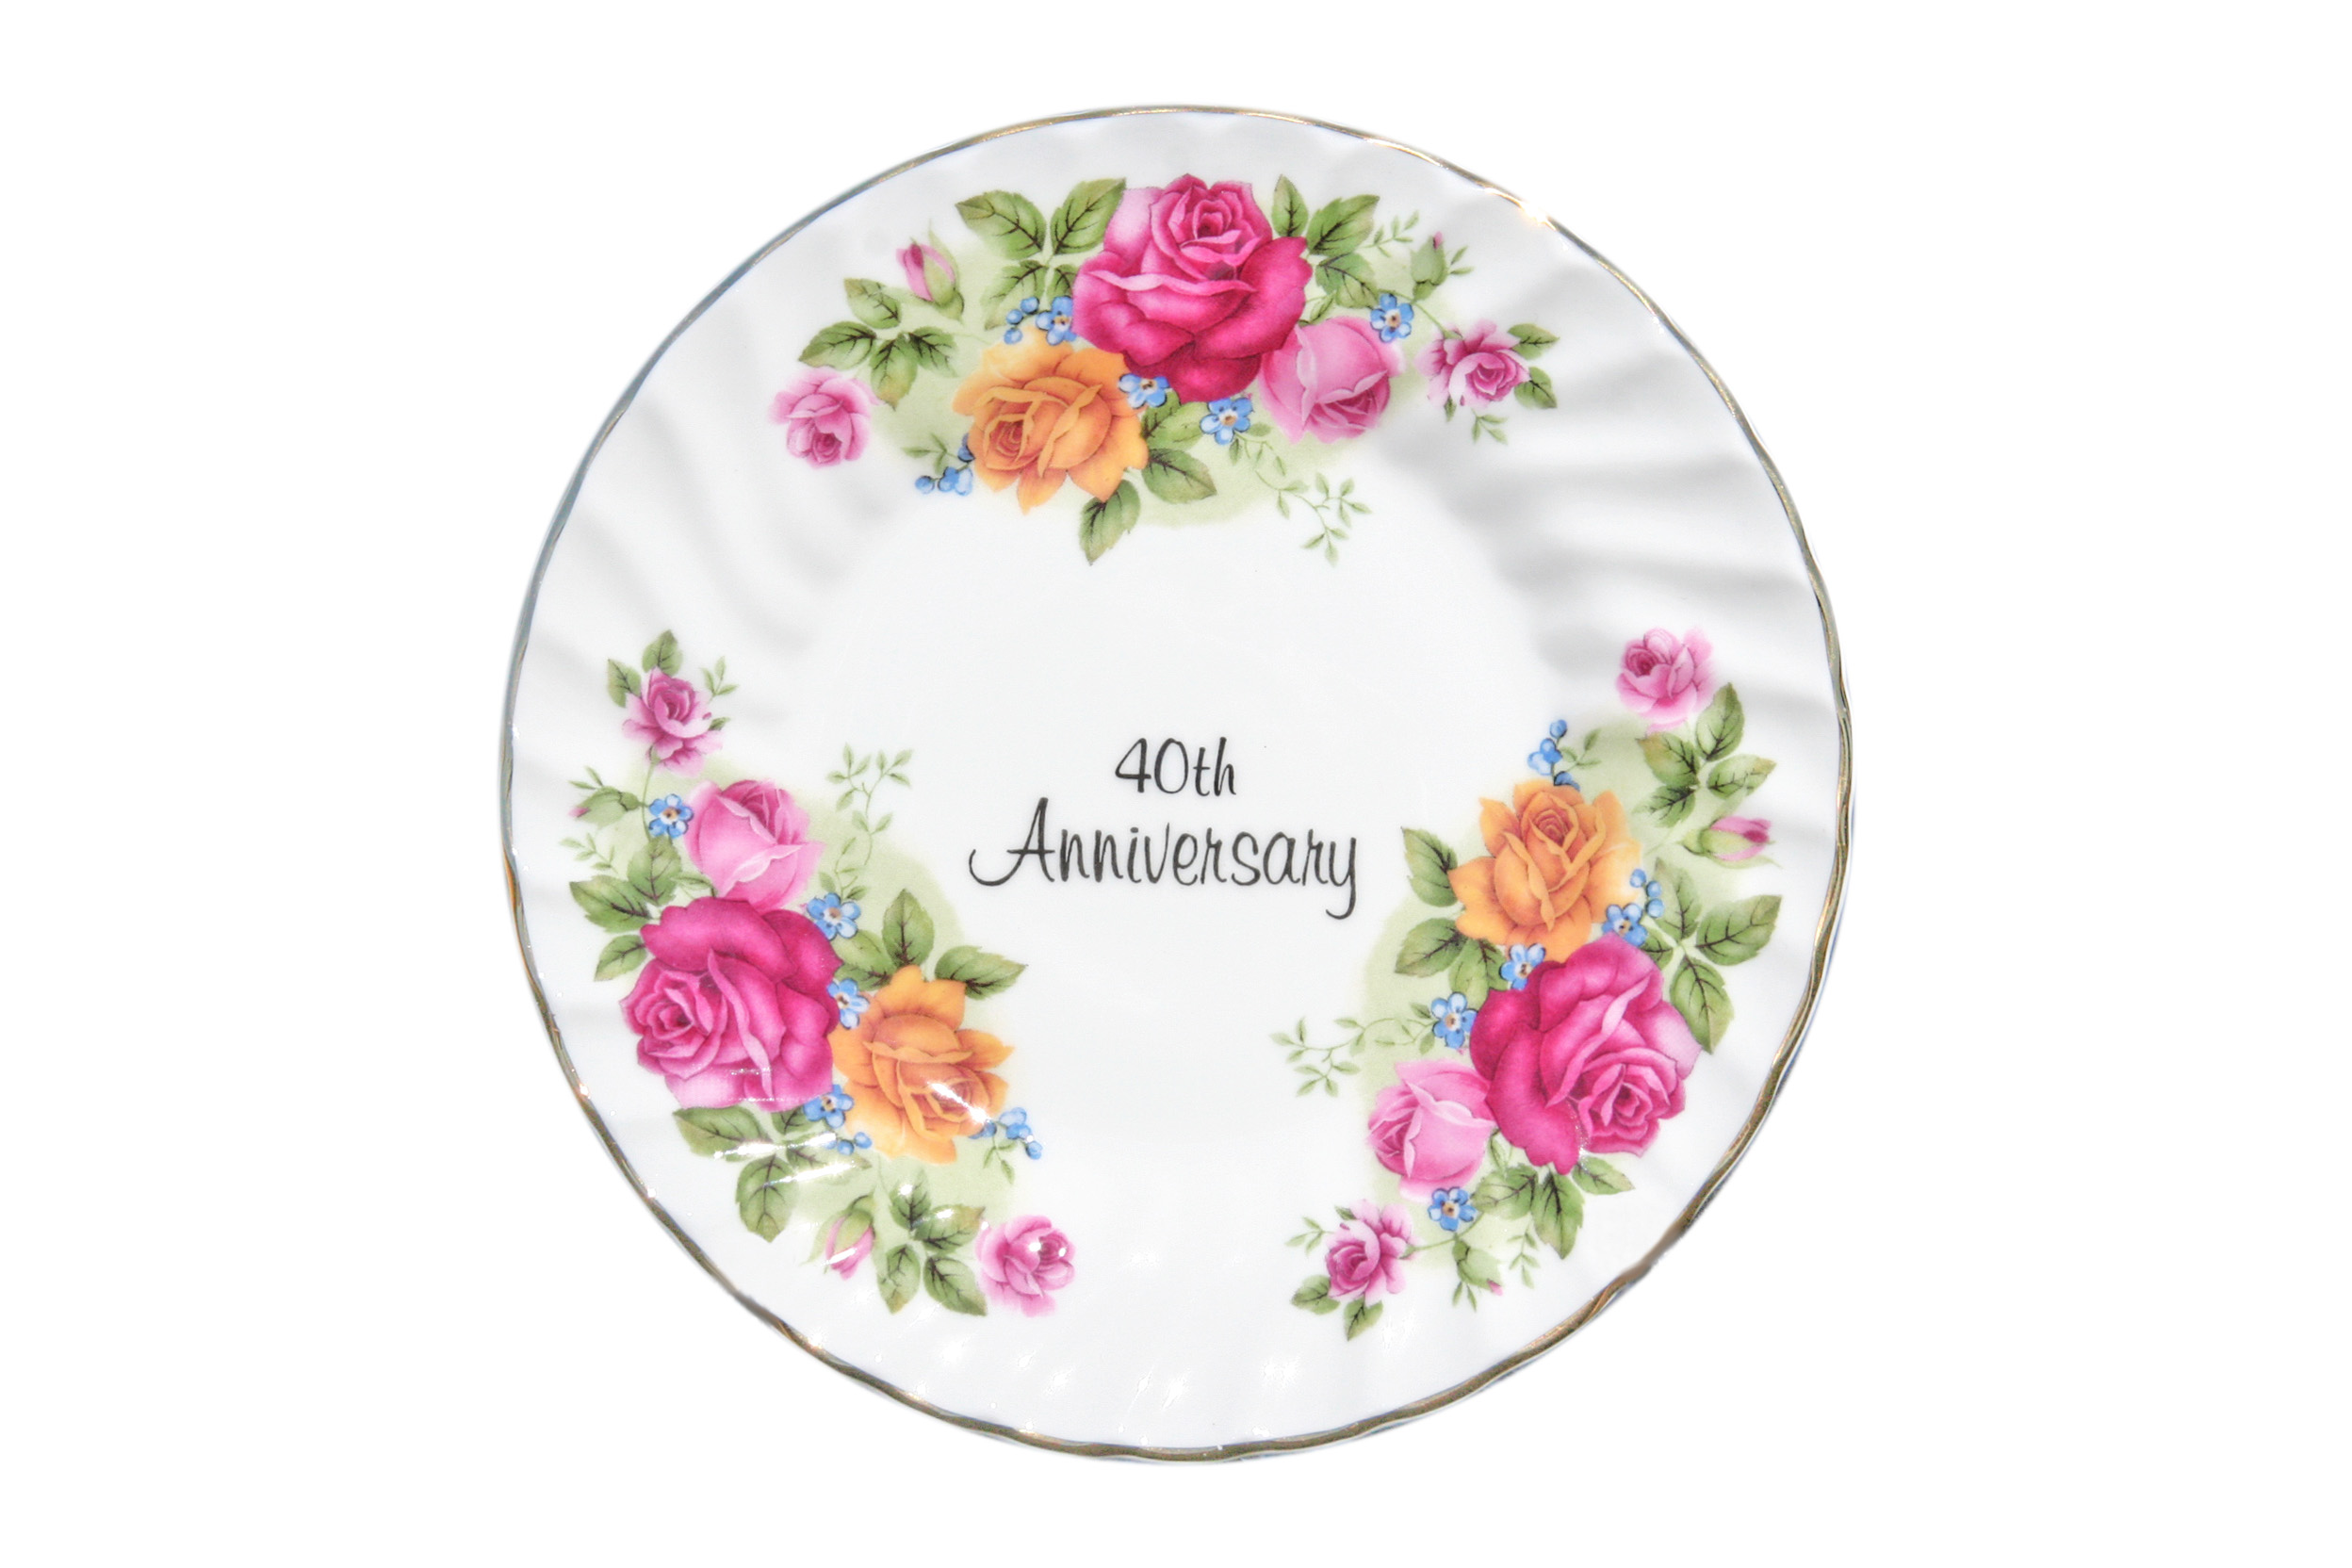 40th Anniversary Plate (6 inch) with stand